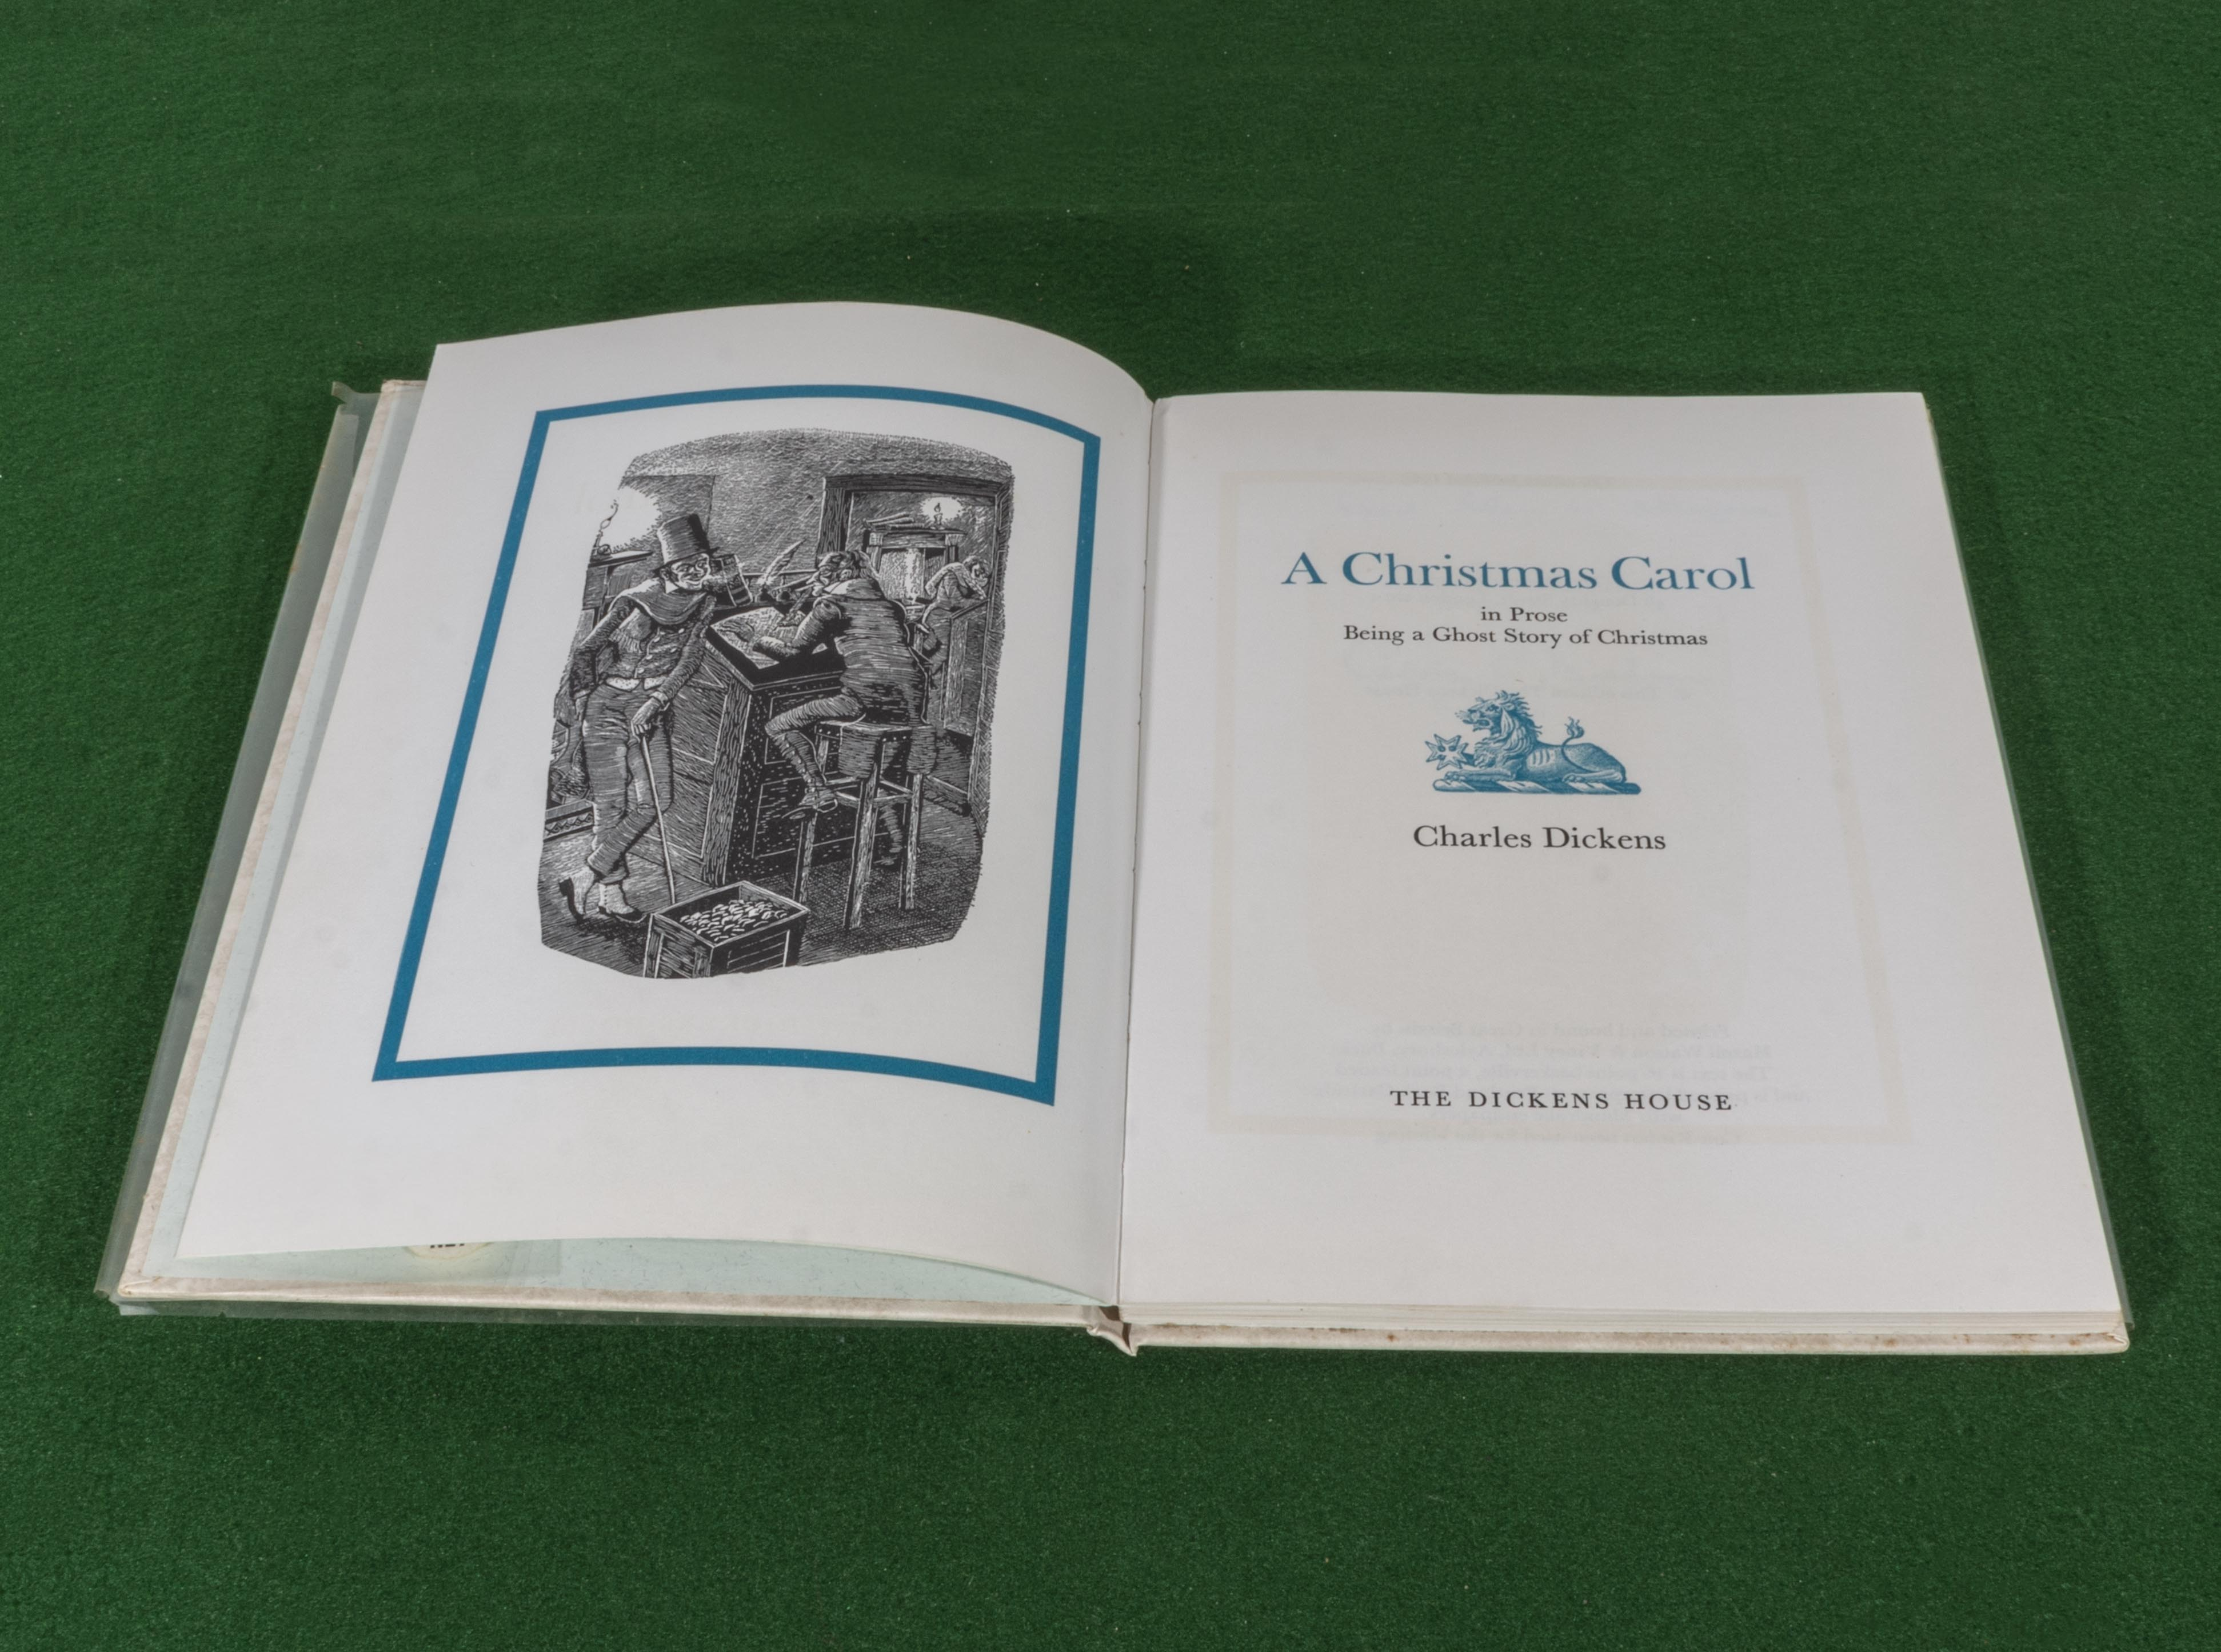 Lot 53 - An edition of A Christmas Carol, published by The Dickens House 1965, dedication 'God bless us